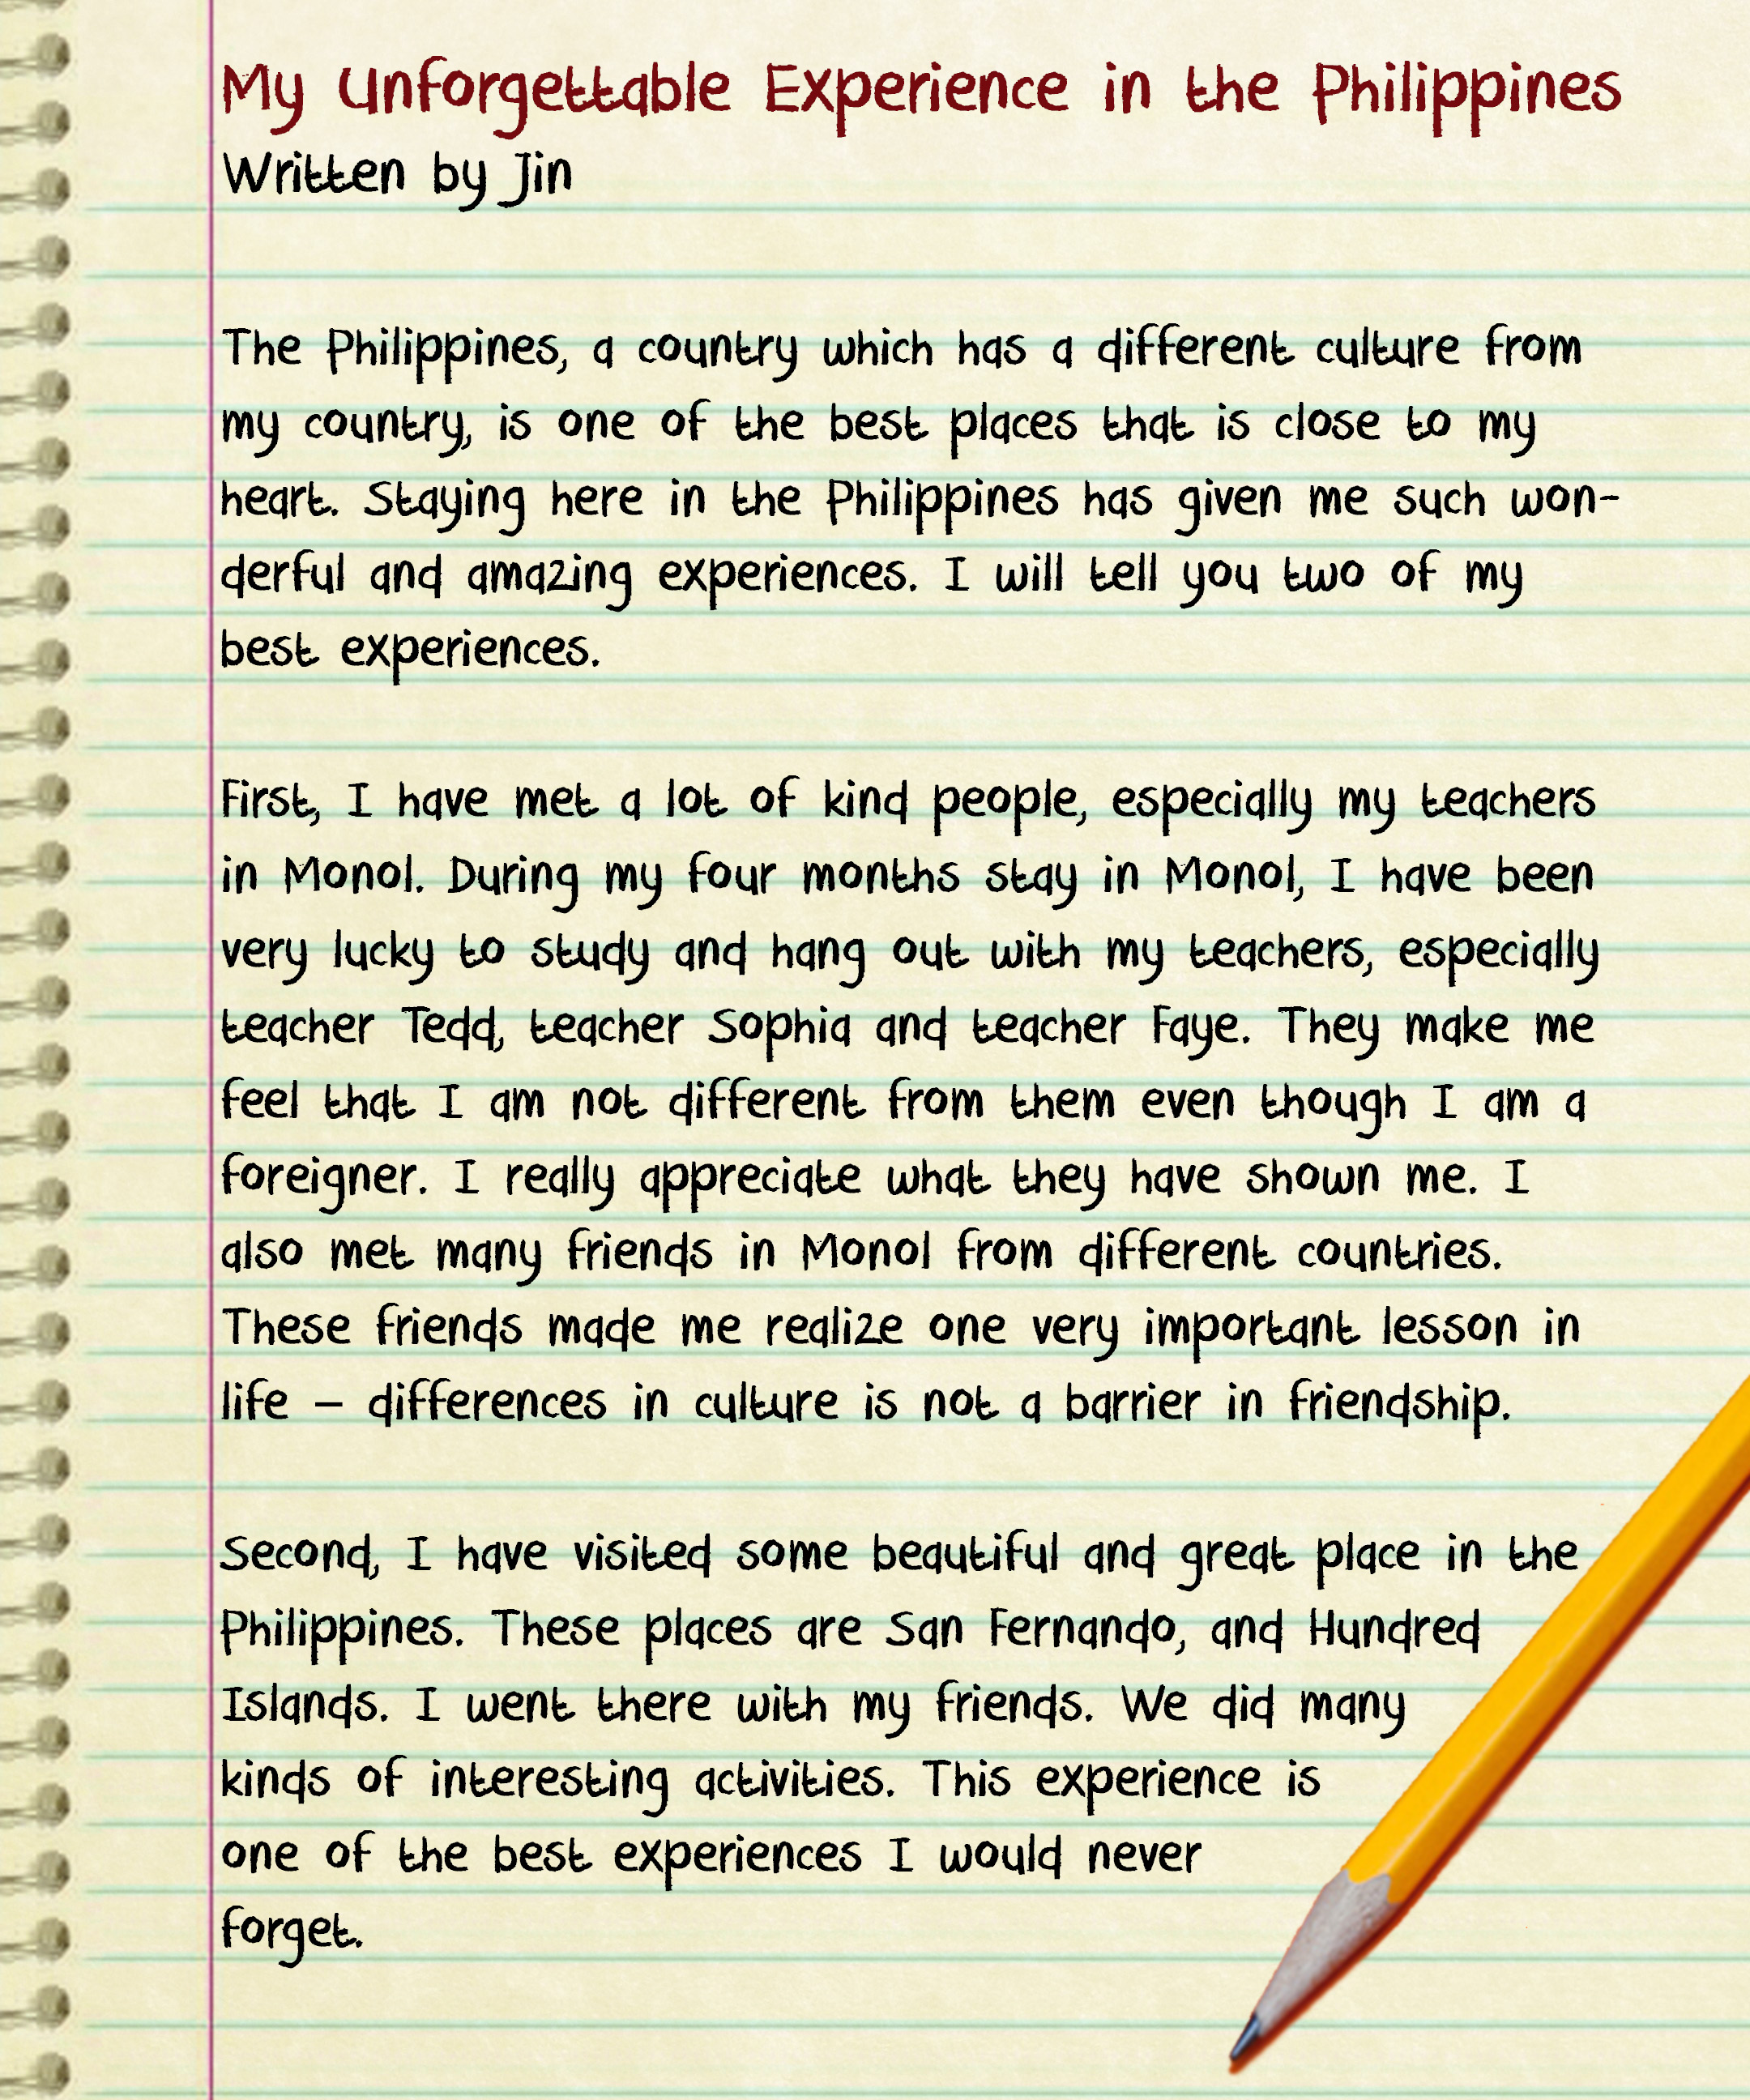 special moment in your life essay Free essays on special moments in your life get help with your writing 1 through 30.